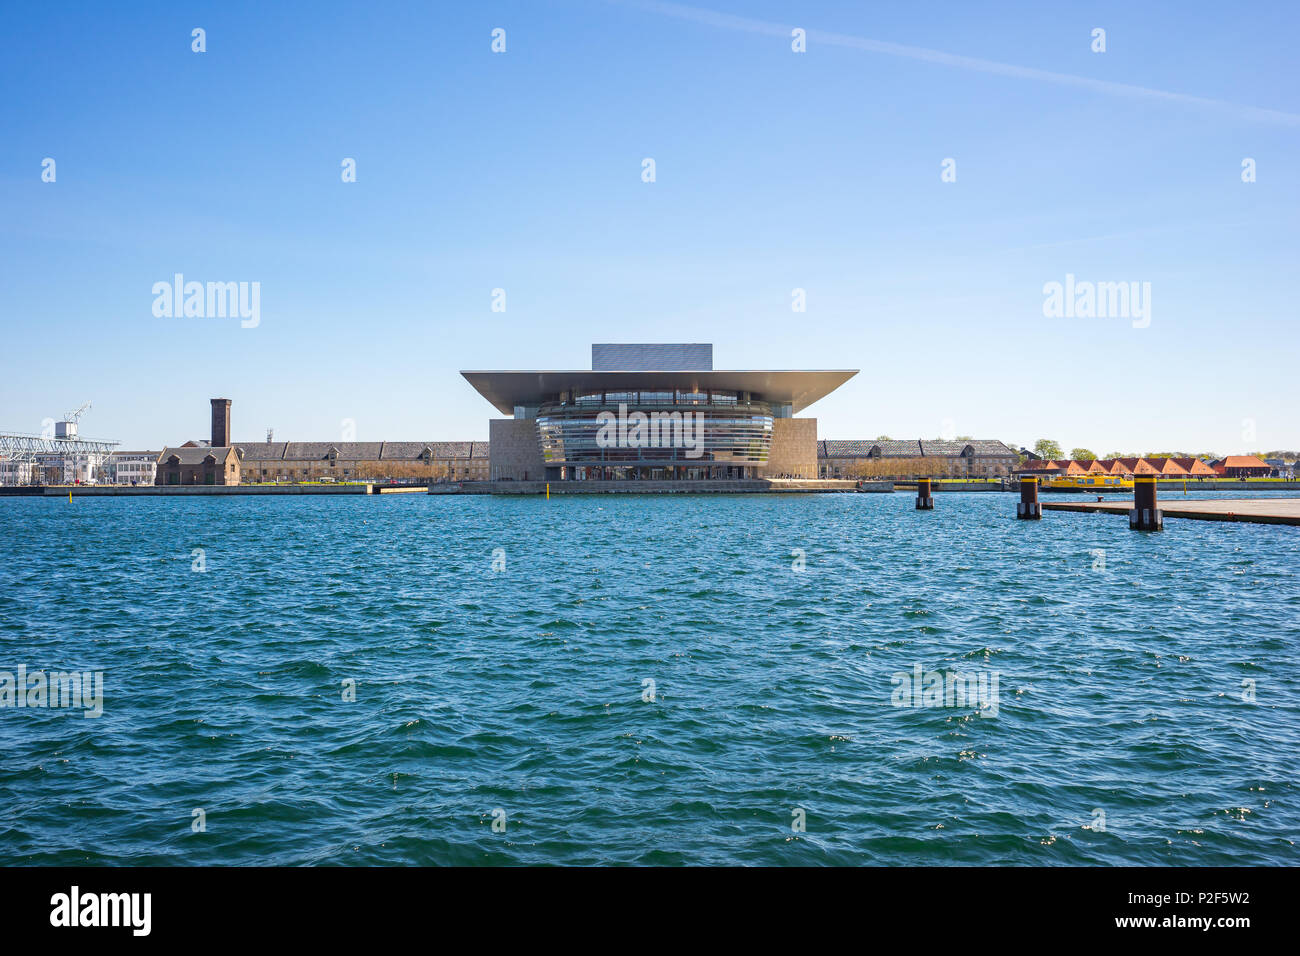 Copenhagen, Denamrk - May 1, 2017: Copenhagen Opera House landmark in Copenhagen city, Denmark. - Stock Image